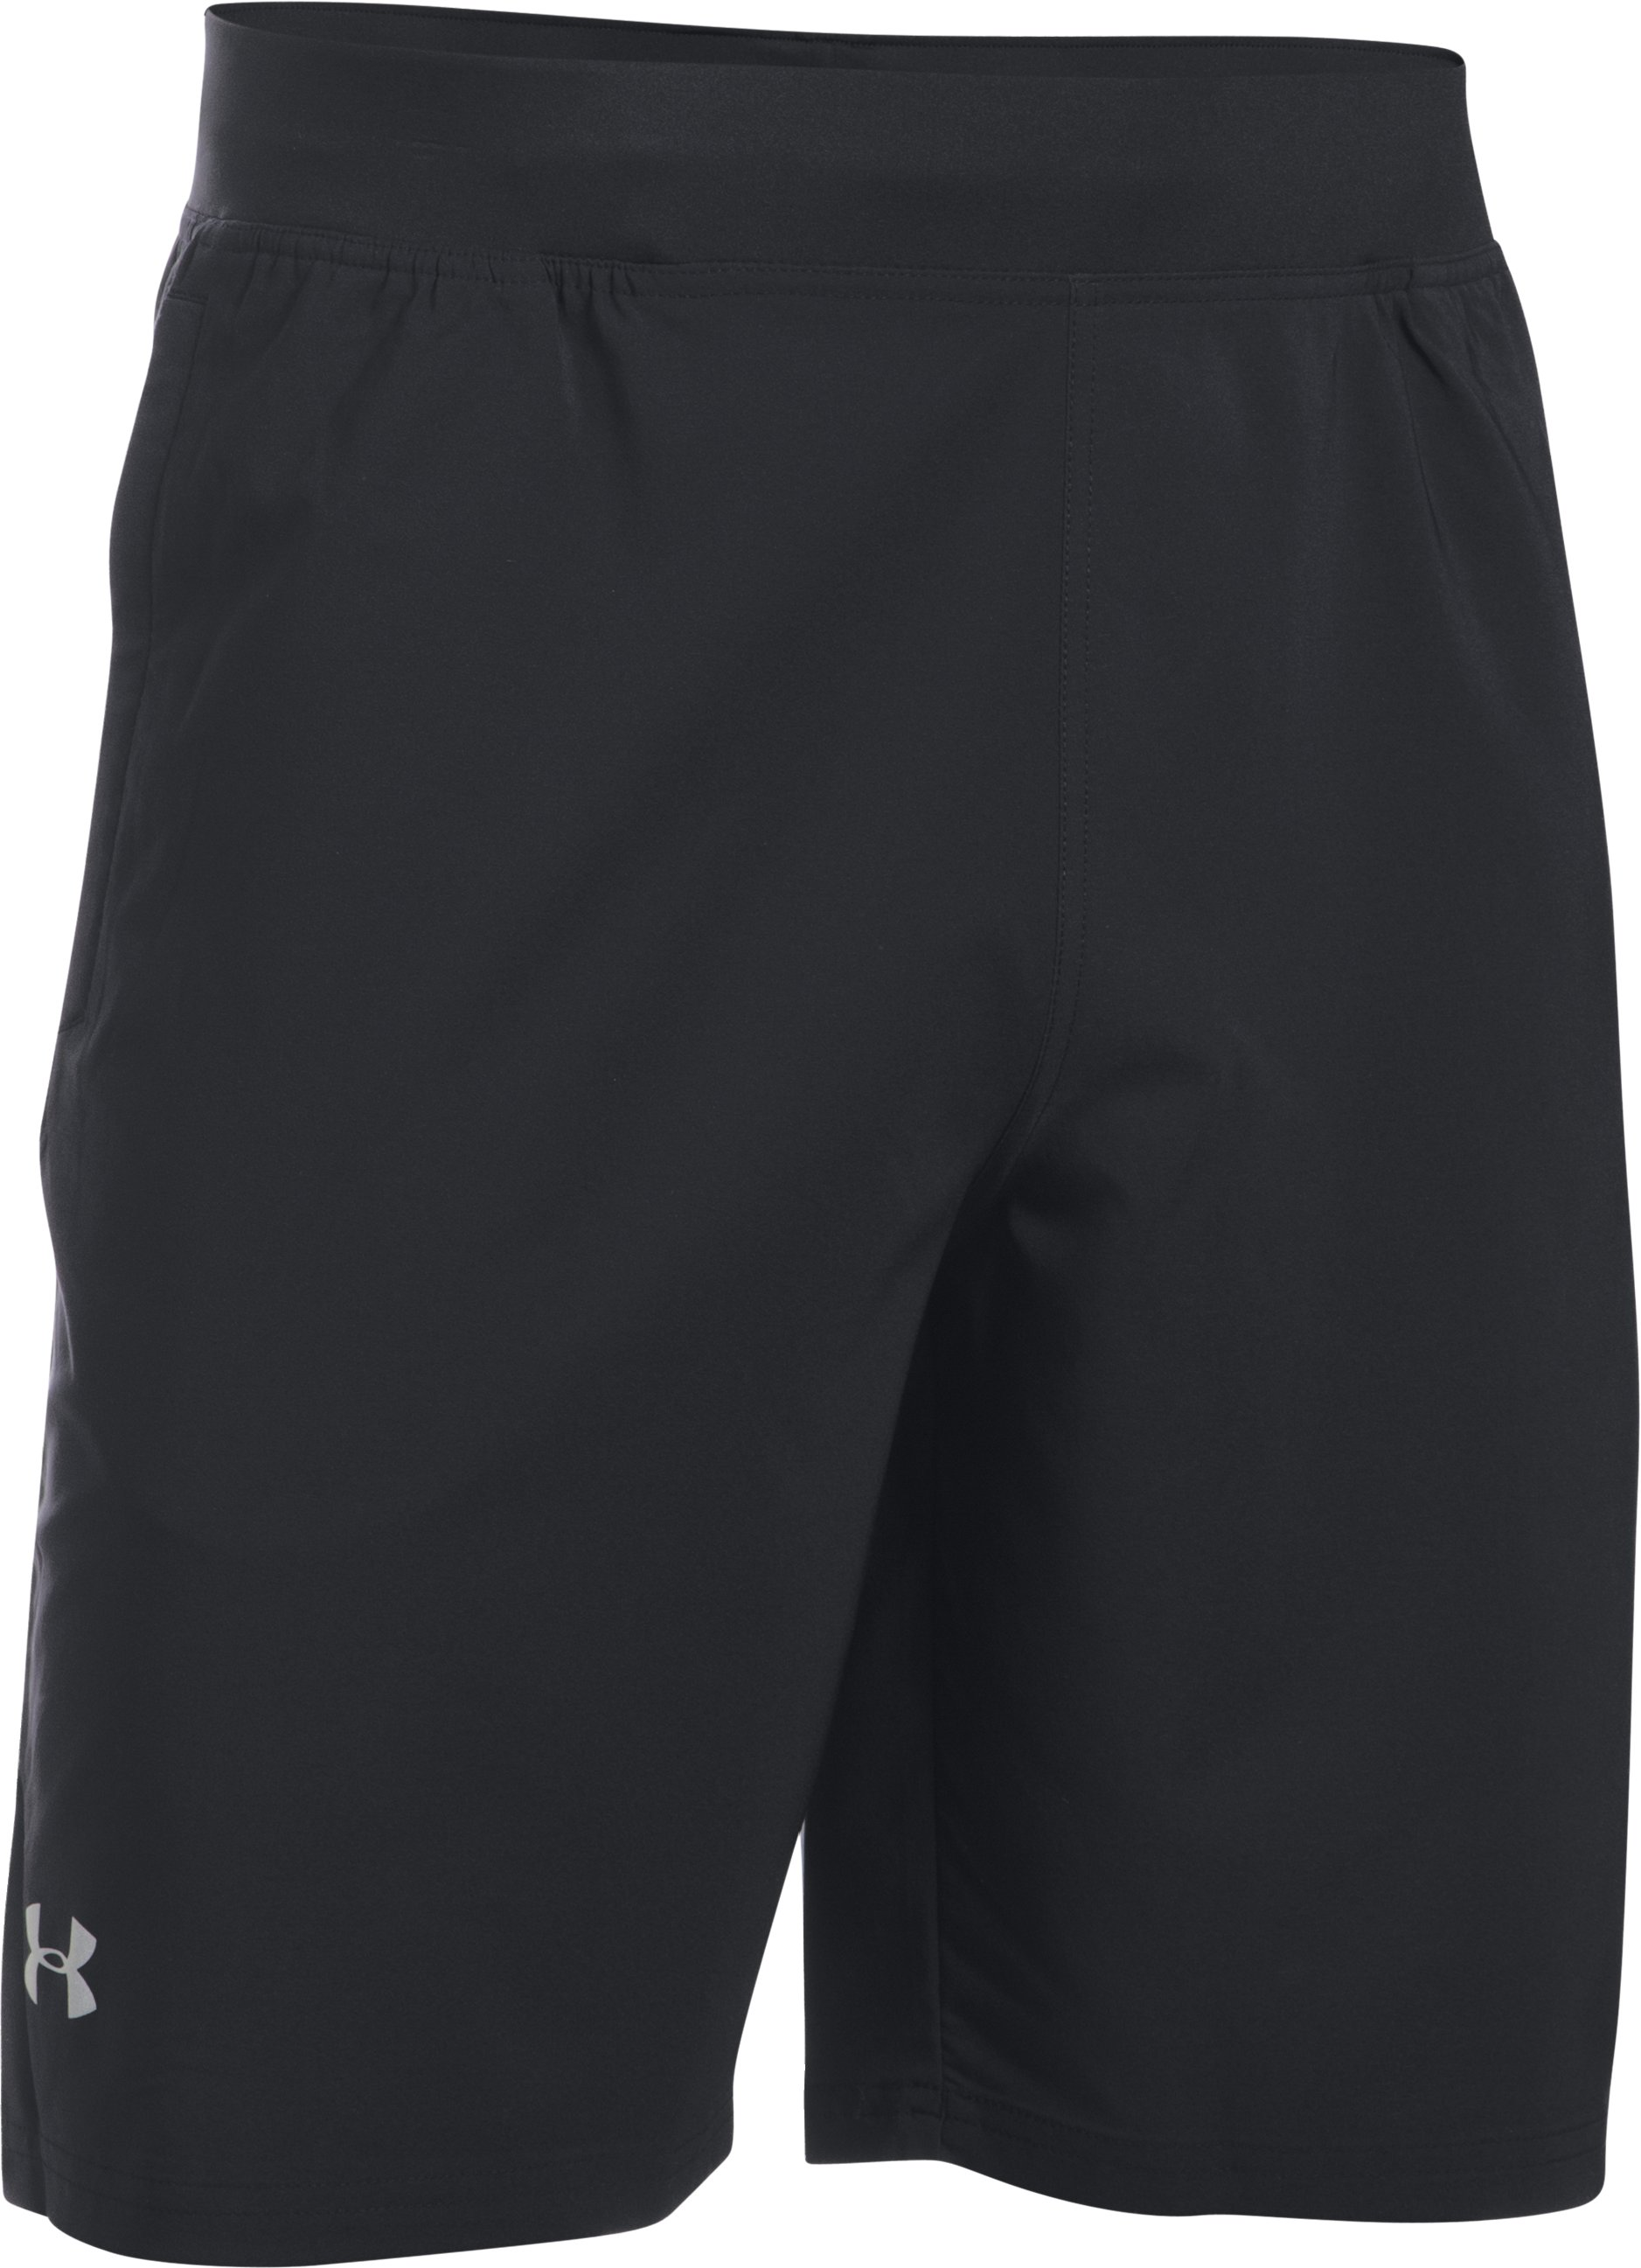 "Men's UA Speedpocket Run 9"" Shorts, Black"